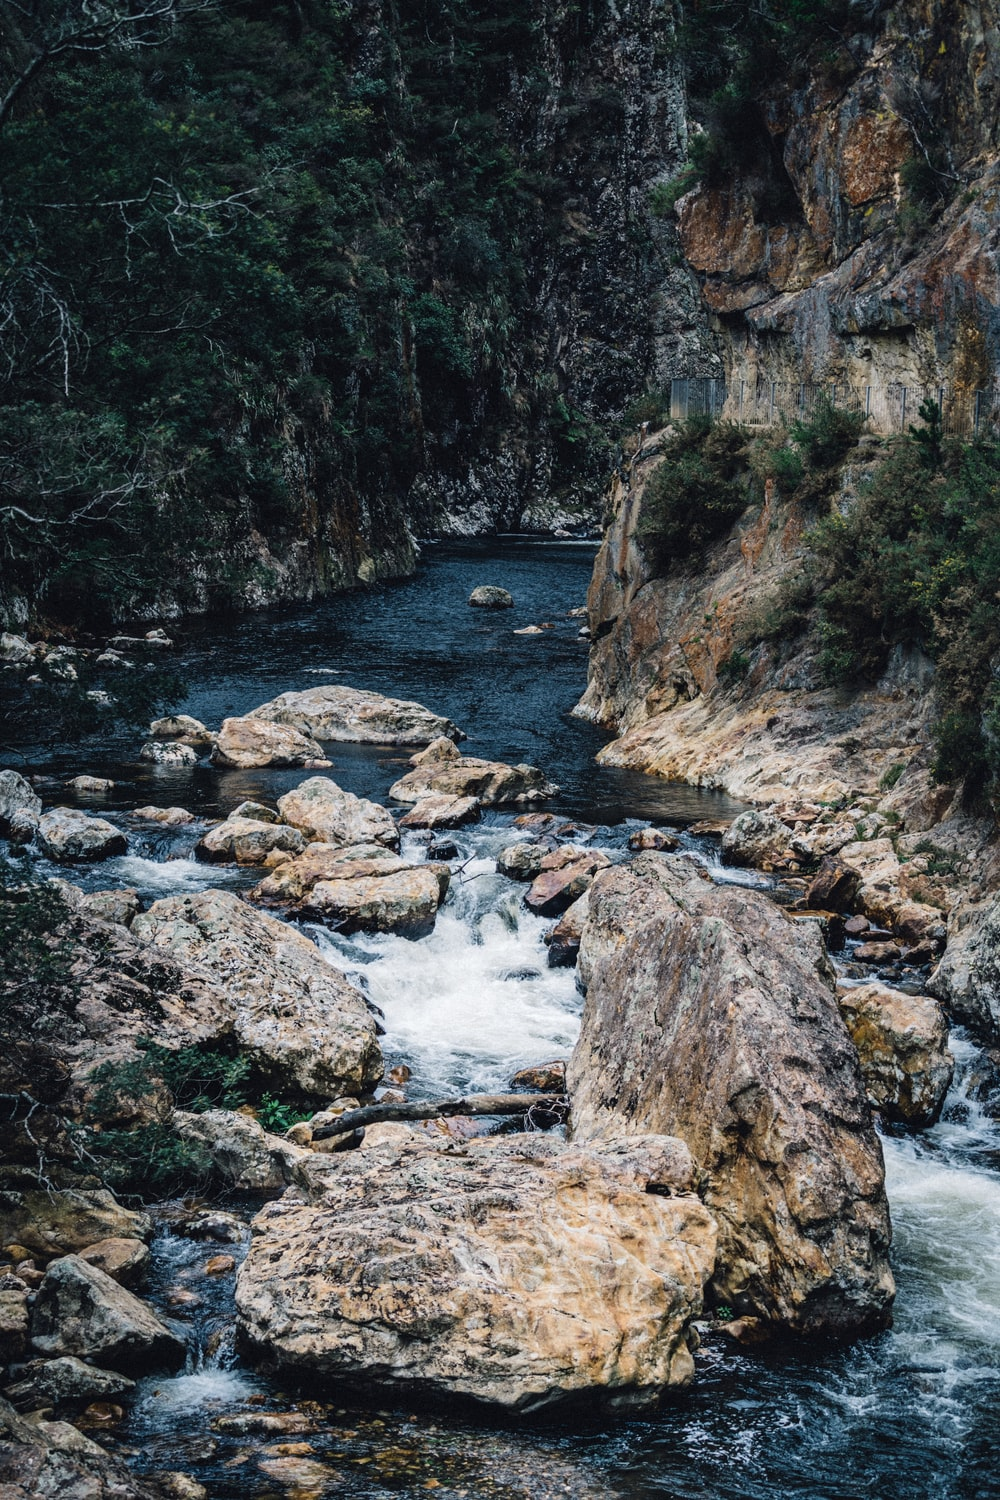 river in between rocky mountain during daytime